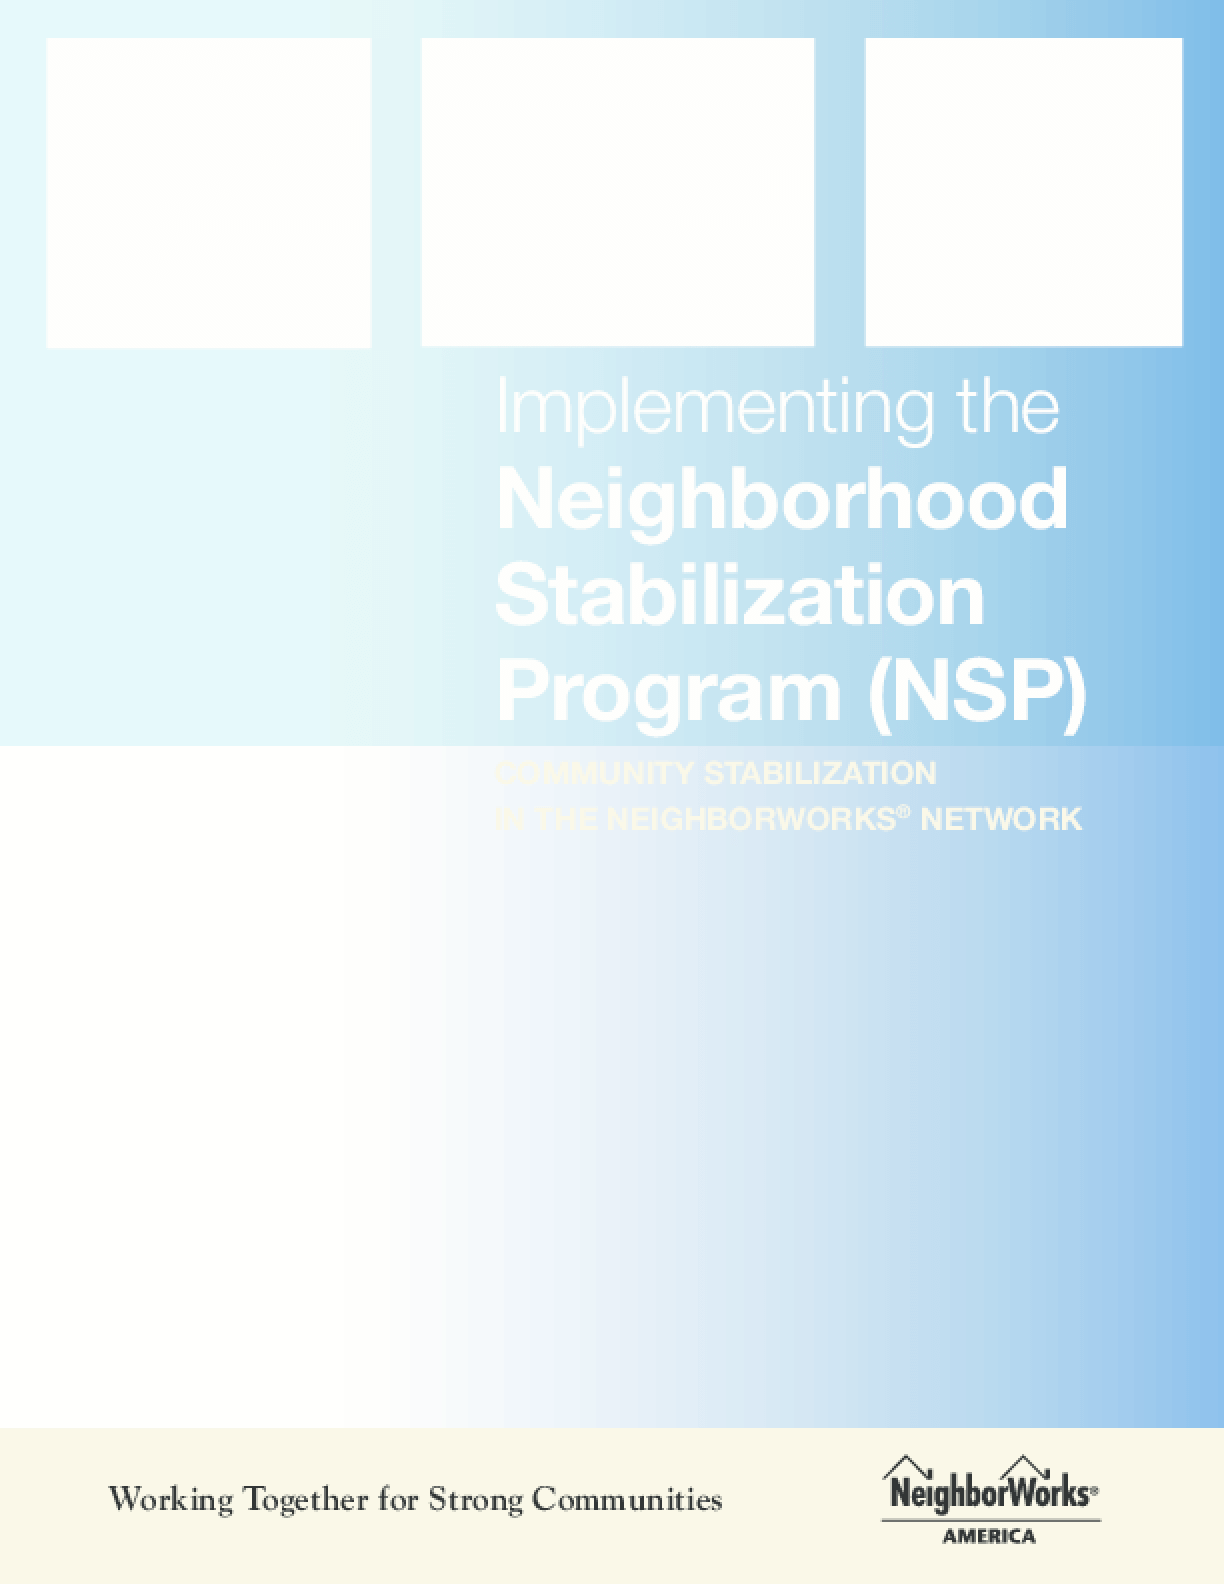 Implementing the Neighborhood Stabilization Program: Community Stabilization in the NeighborWorks Network